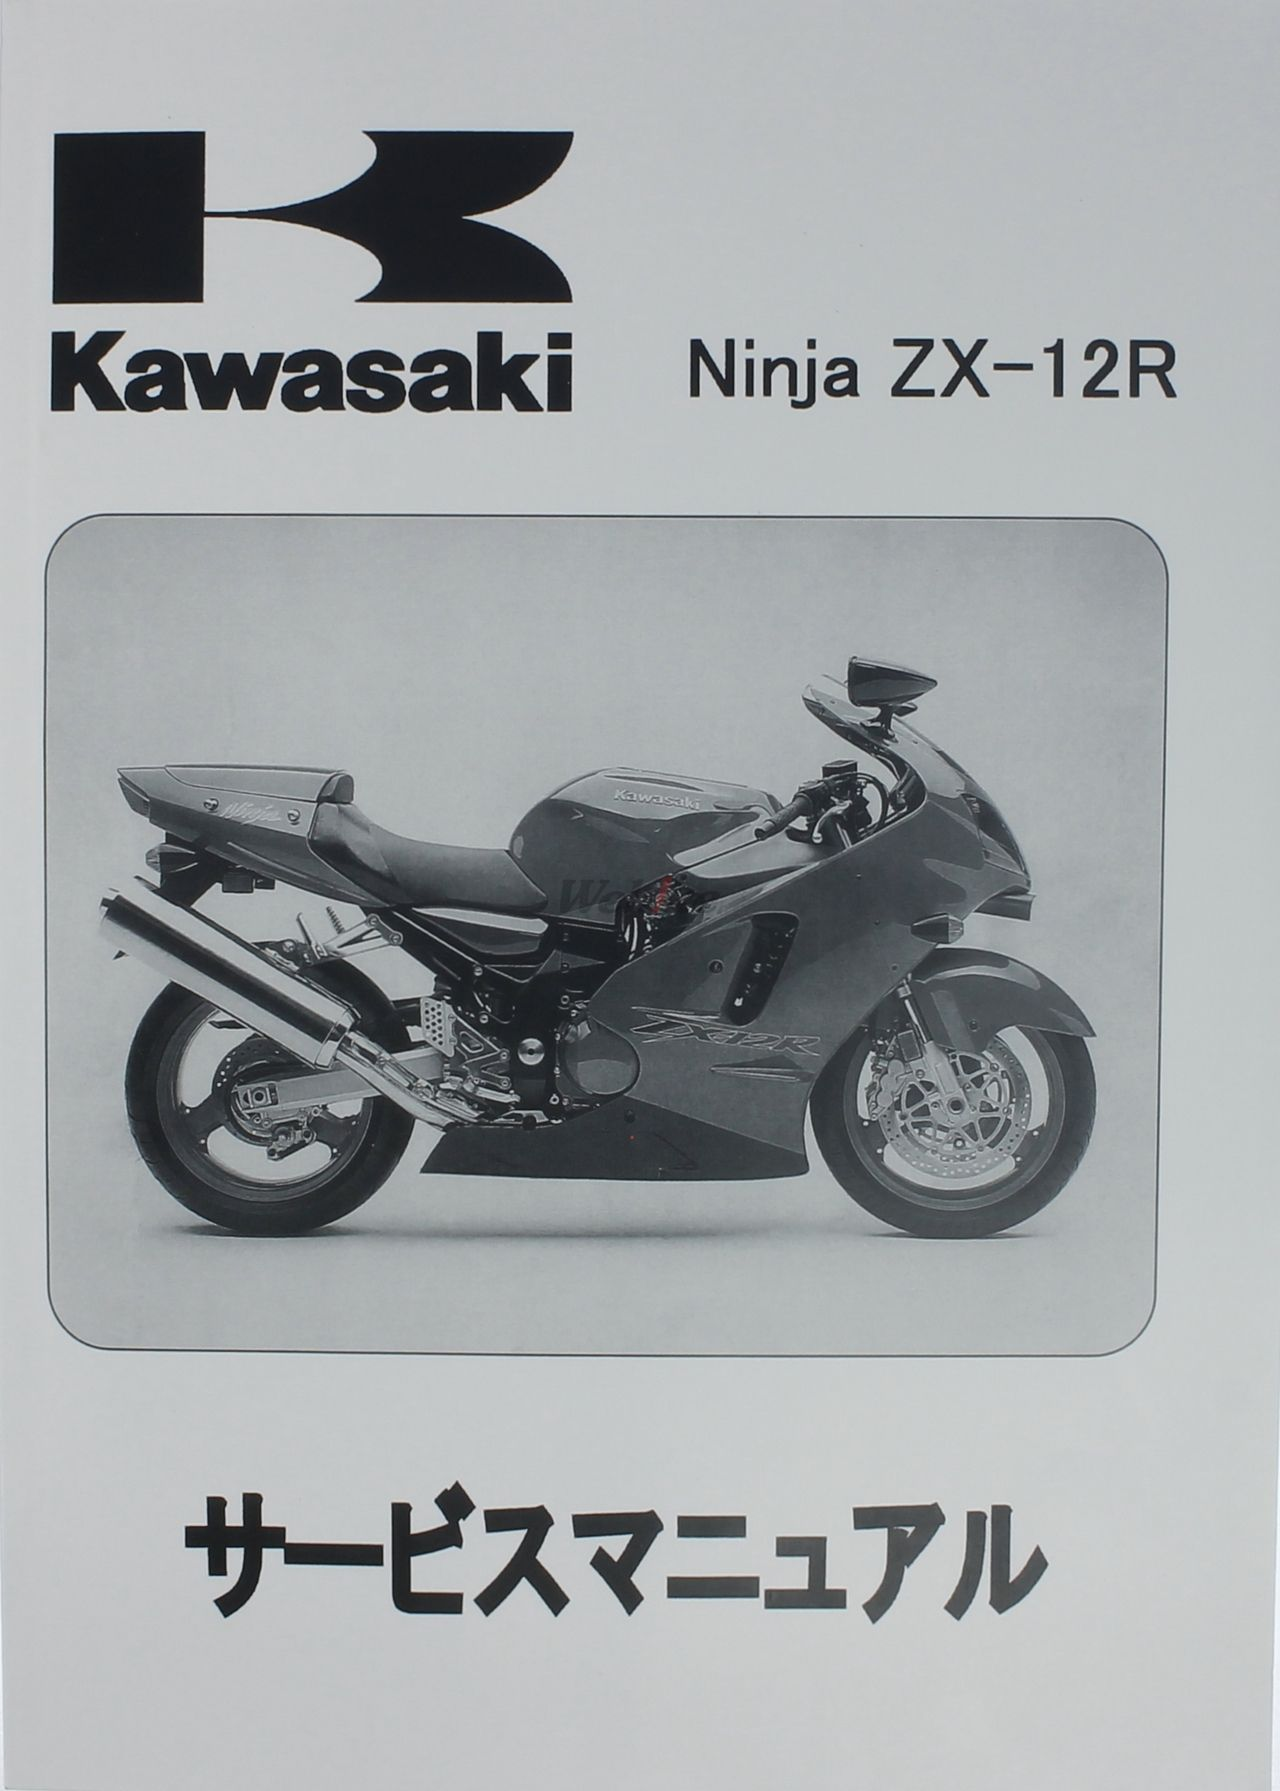 Kawasaki Service Manual Base Version Japanese J9999 0091 02 Zx1200 Wiring Diagram Page 1 Of